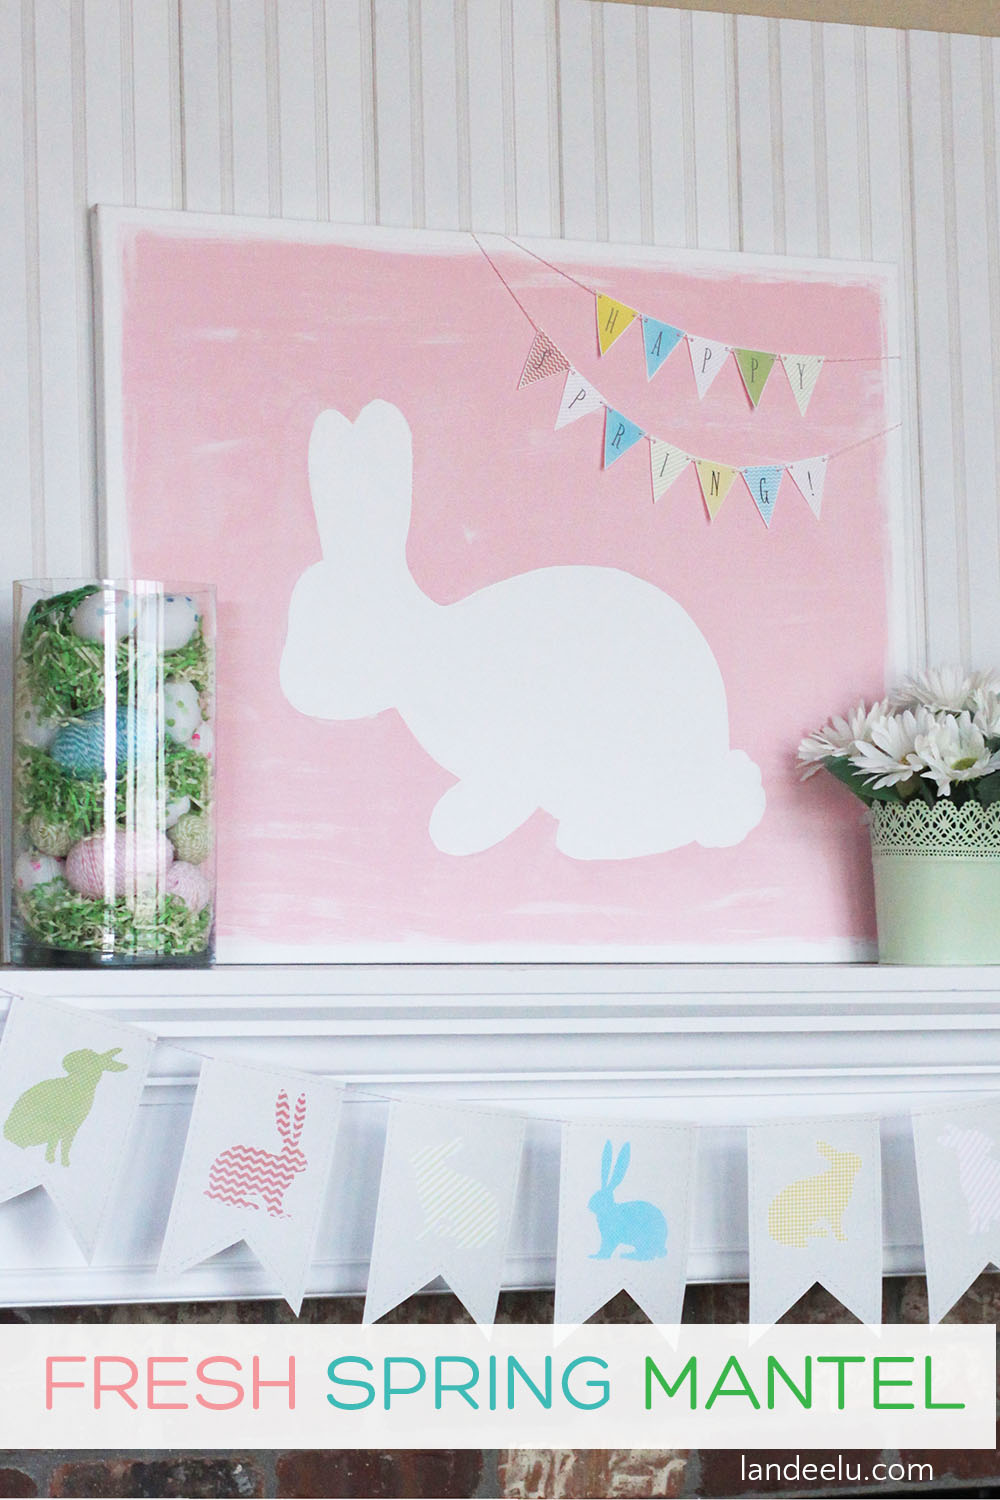 Fun and Fresh Spring Mantel Idea with lots of crafts and free printables! #springmantel #eastermantel #happyspring #freeprintables